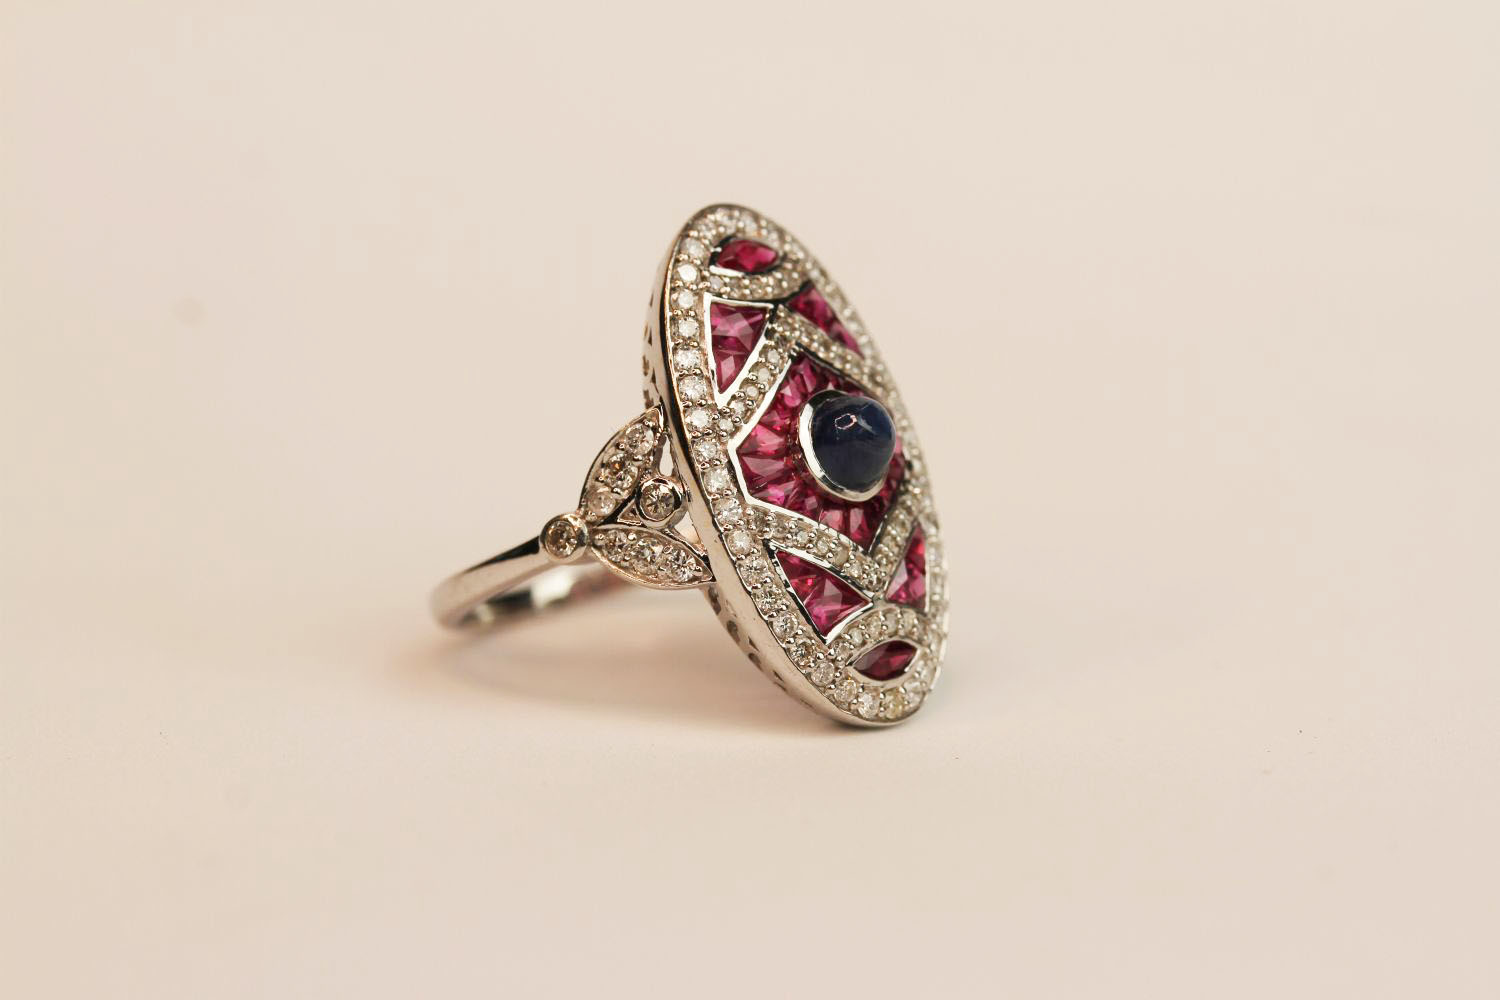 18ct white gold and platinum large Art Deco-style ruby and diamond ring with cabochon sapphire, ring - Image 2 of 3